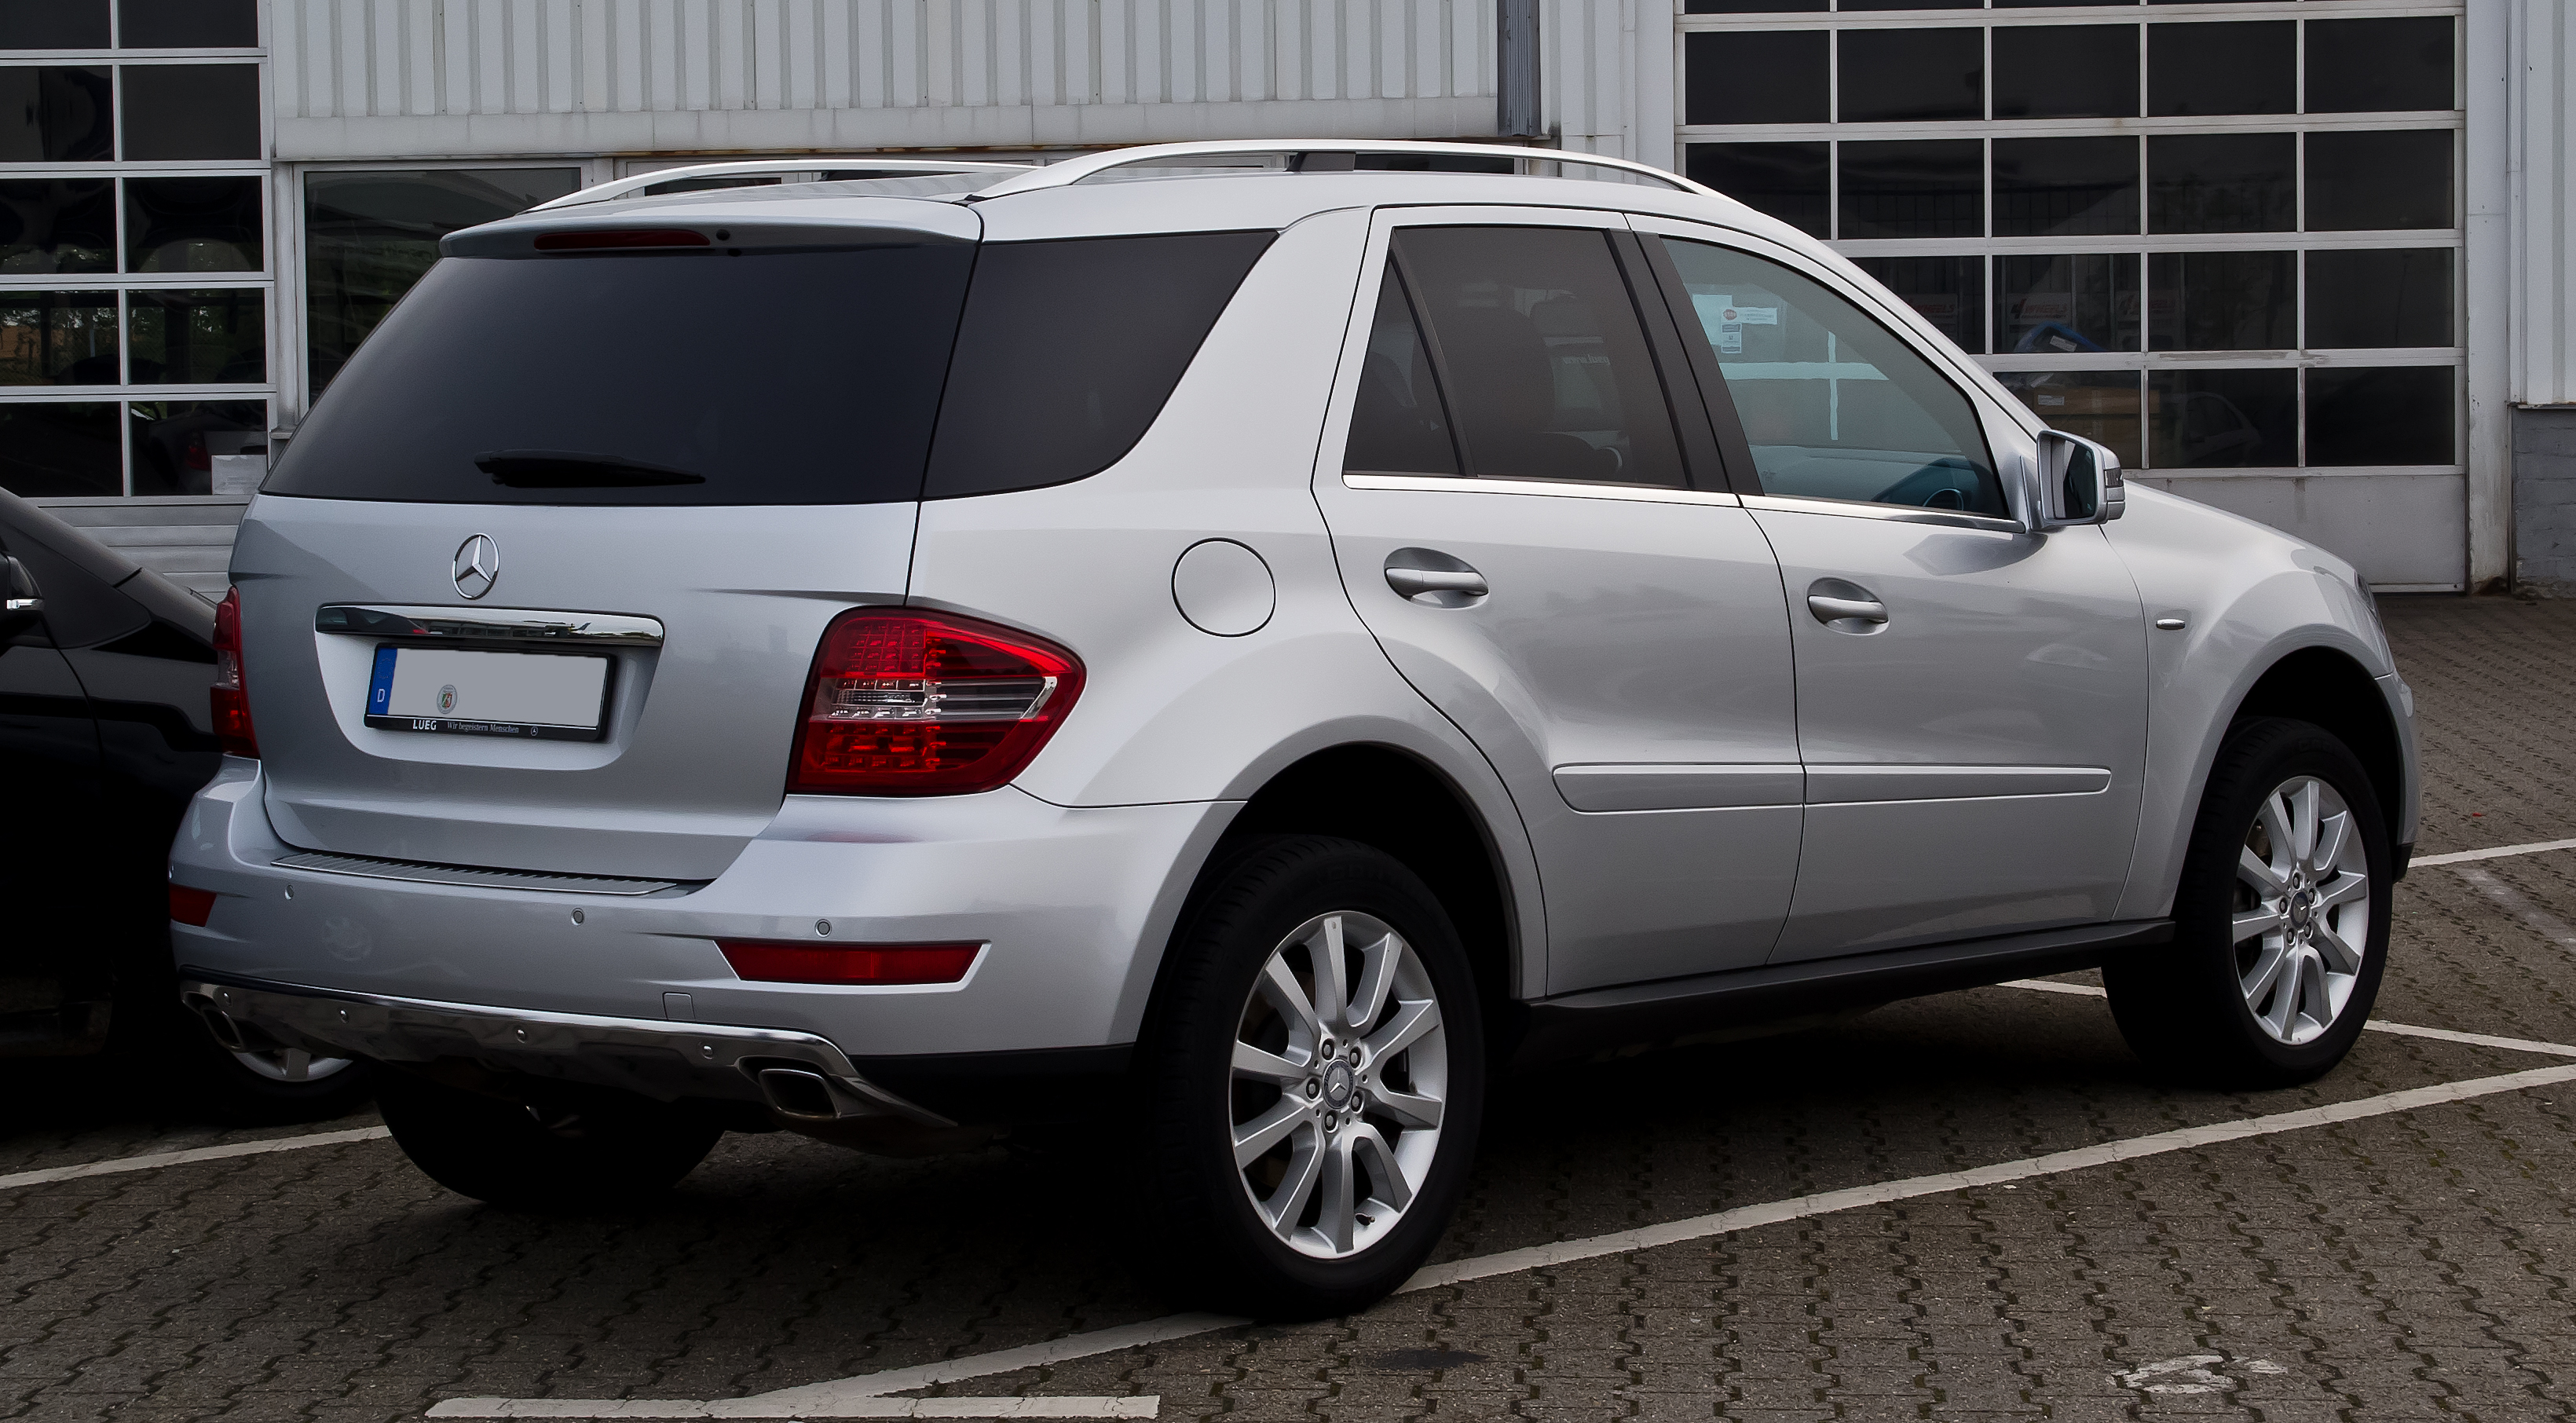 Mercedes benz ml 350 picture 11 reviews news specs for Mercedes benz 350 c